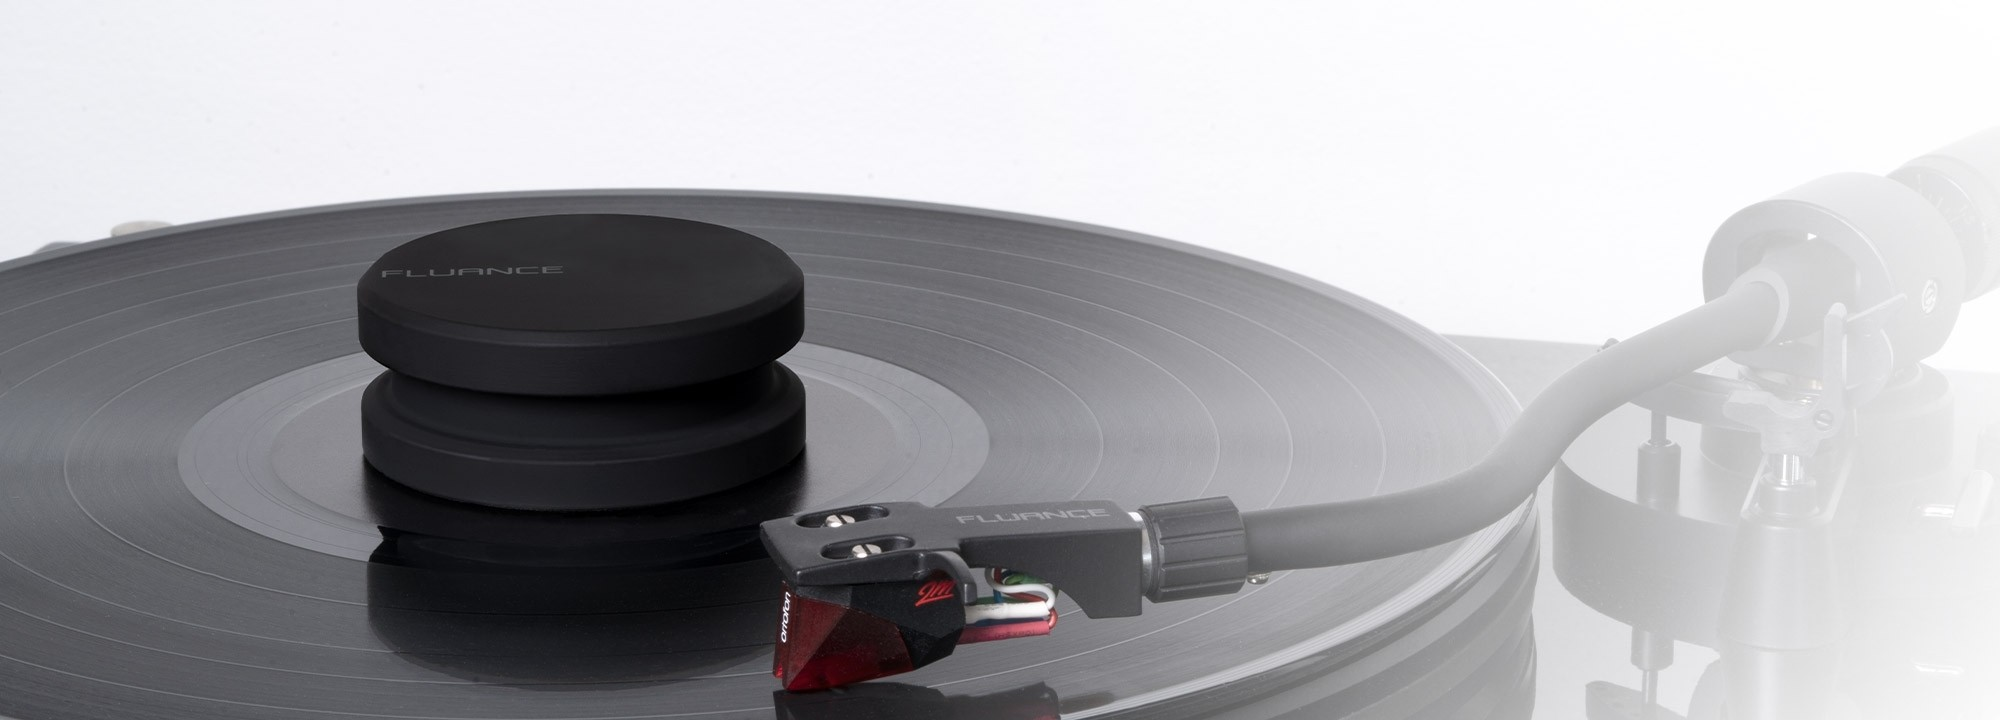 Vinyl Record and Stylus Anti-static Carbon Fiber Brushes with Fluance Frosted Acryclic Platter and Record Weight - Lifestyle